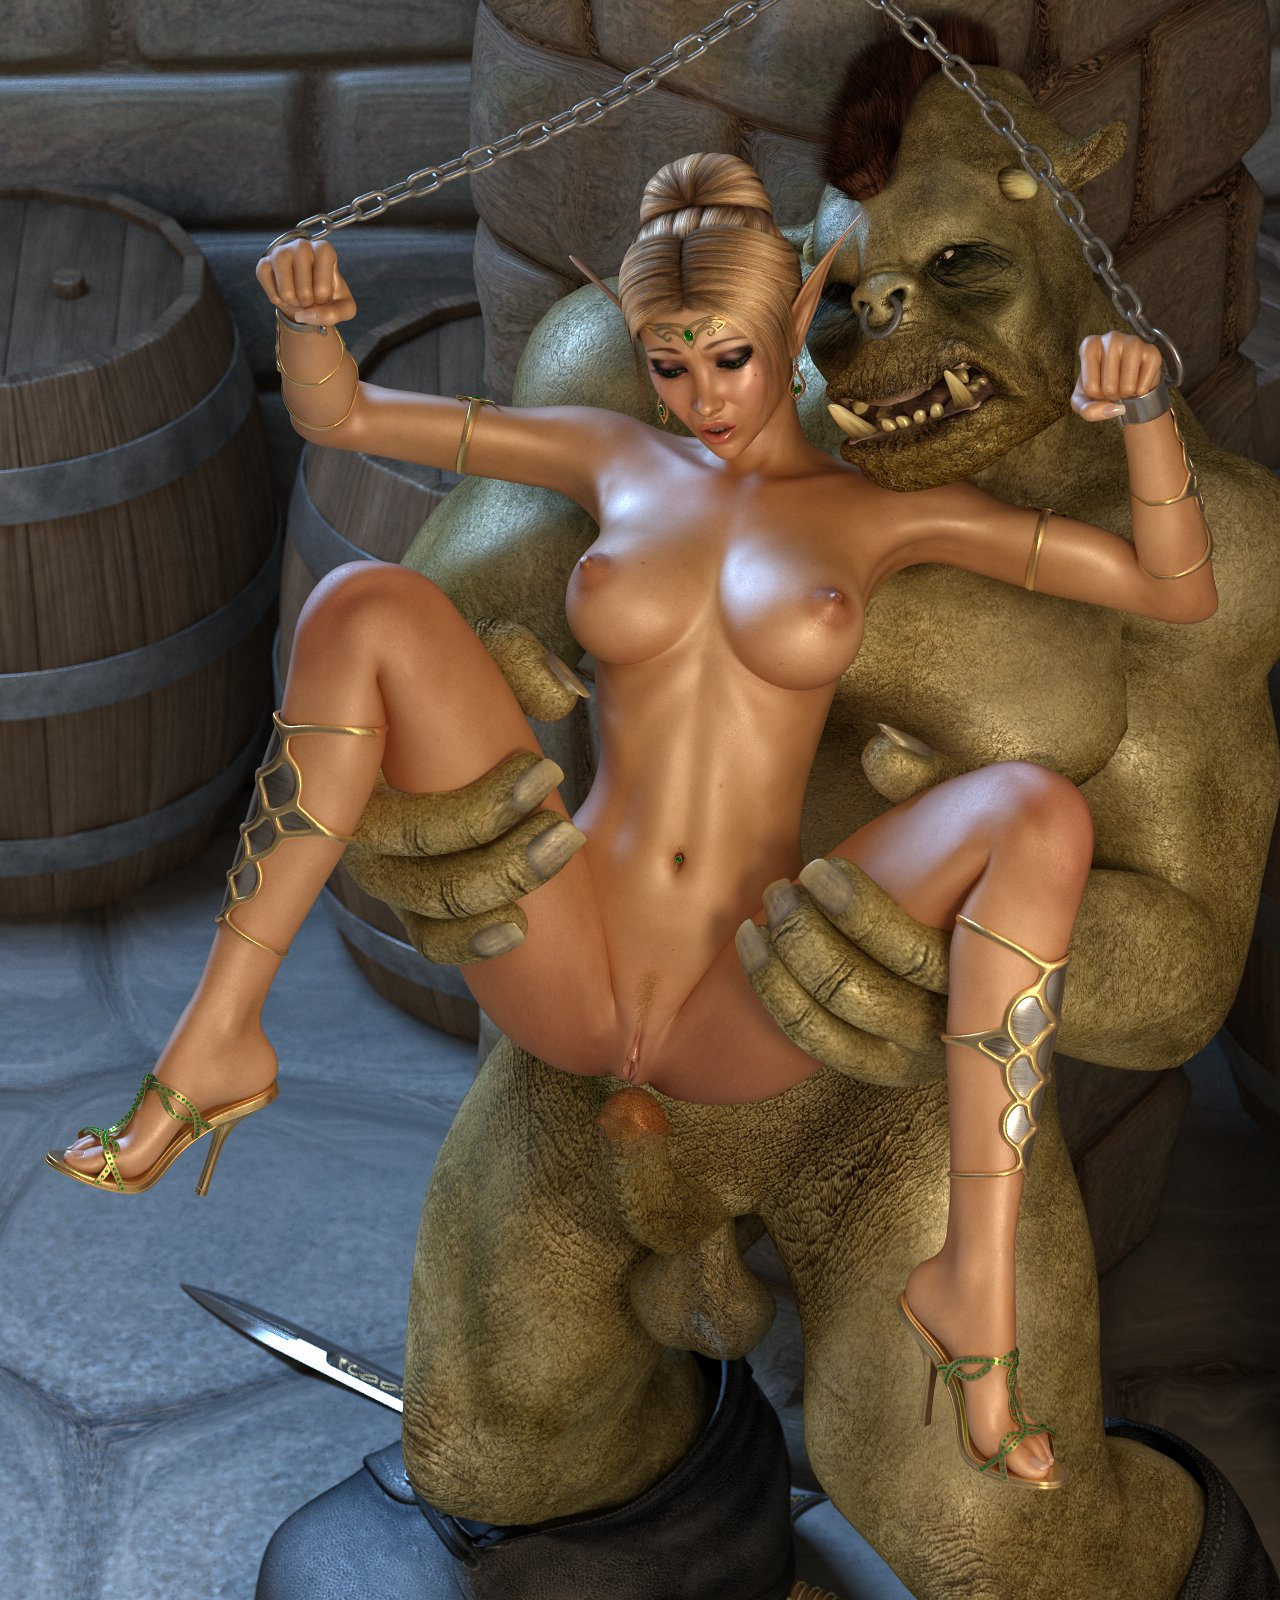 Monster fucking queens 3d art pics xxx comic